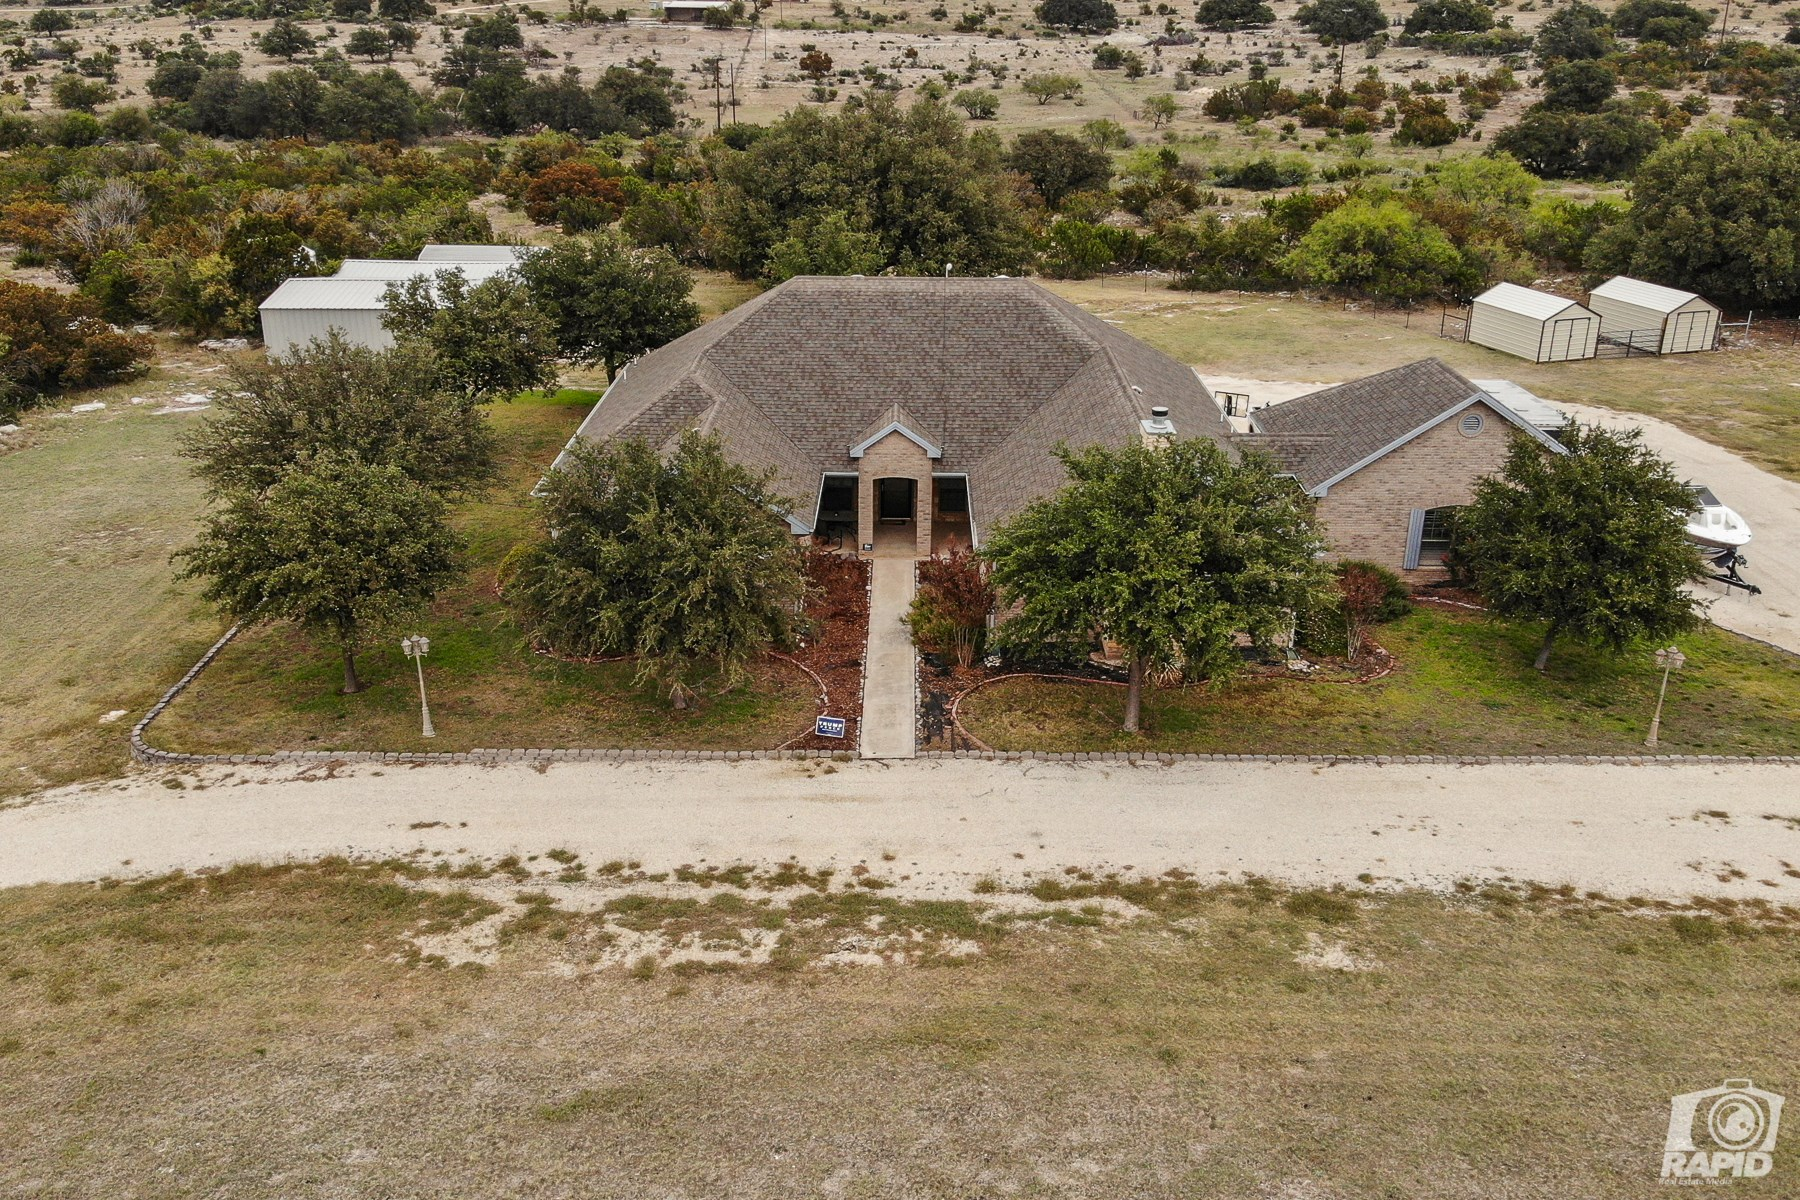 Country Home with land for sale near San Angelo, Texas